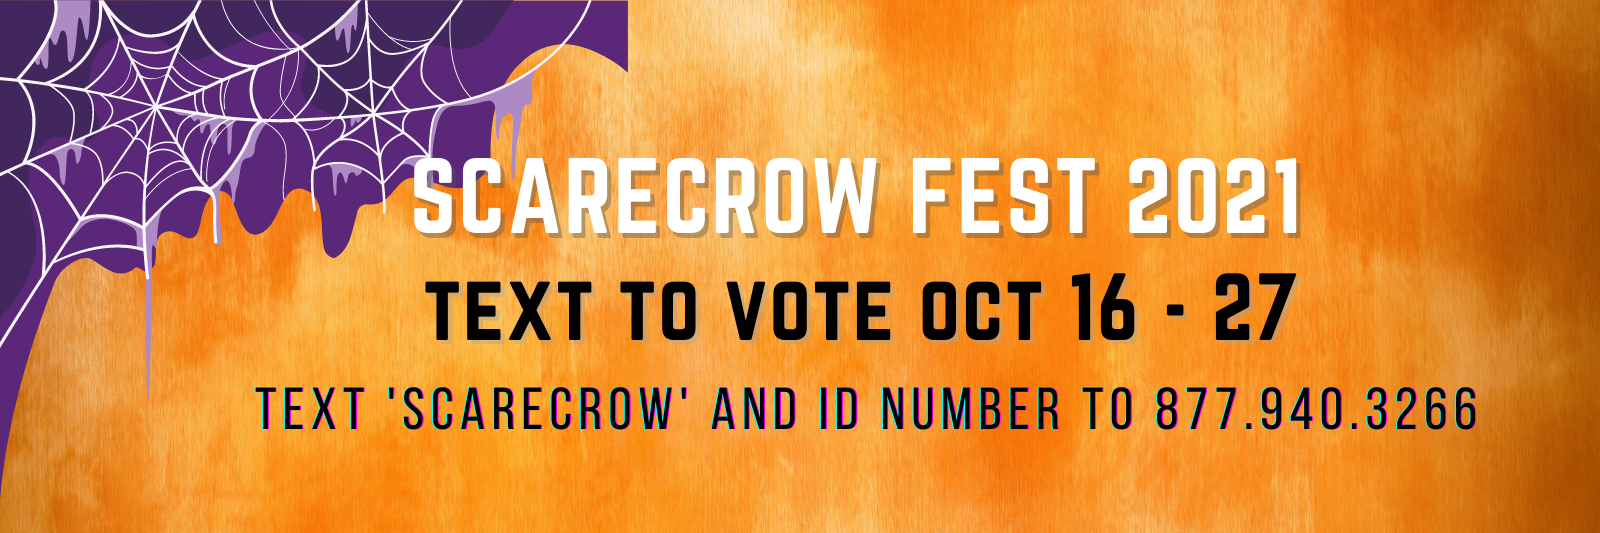 Scarecrowfest-2021-home-page-slider.png